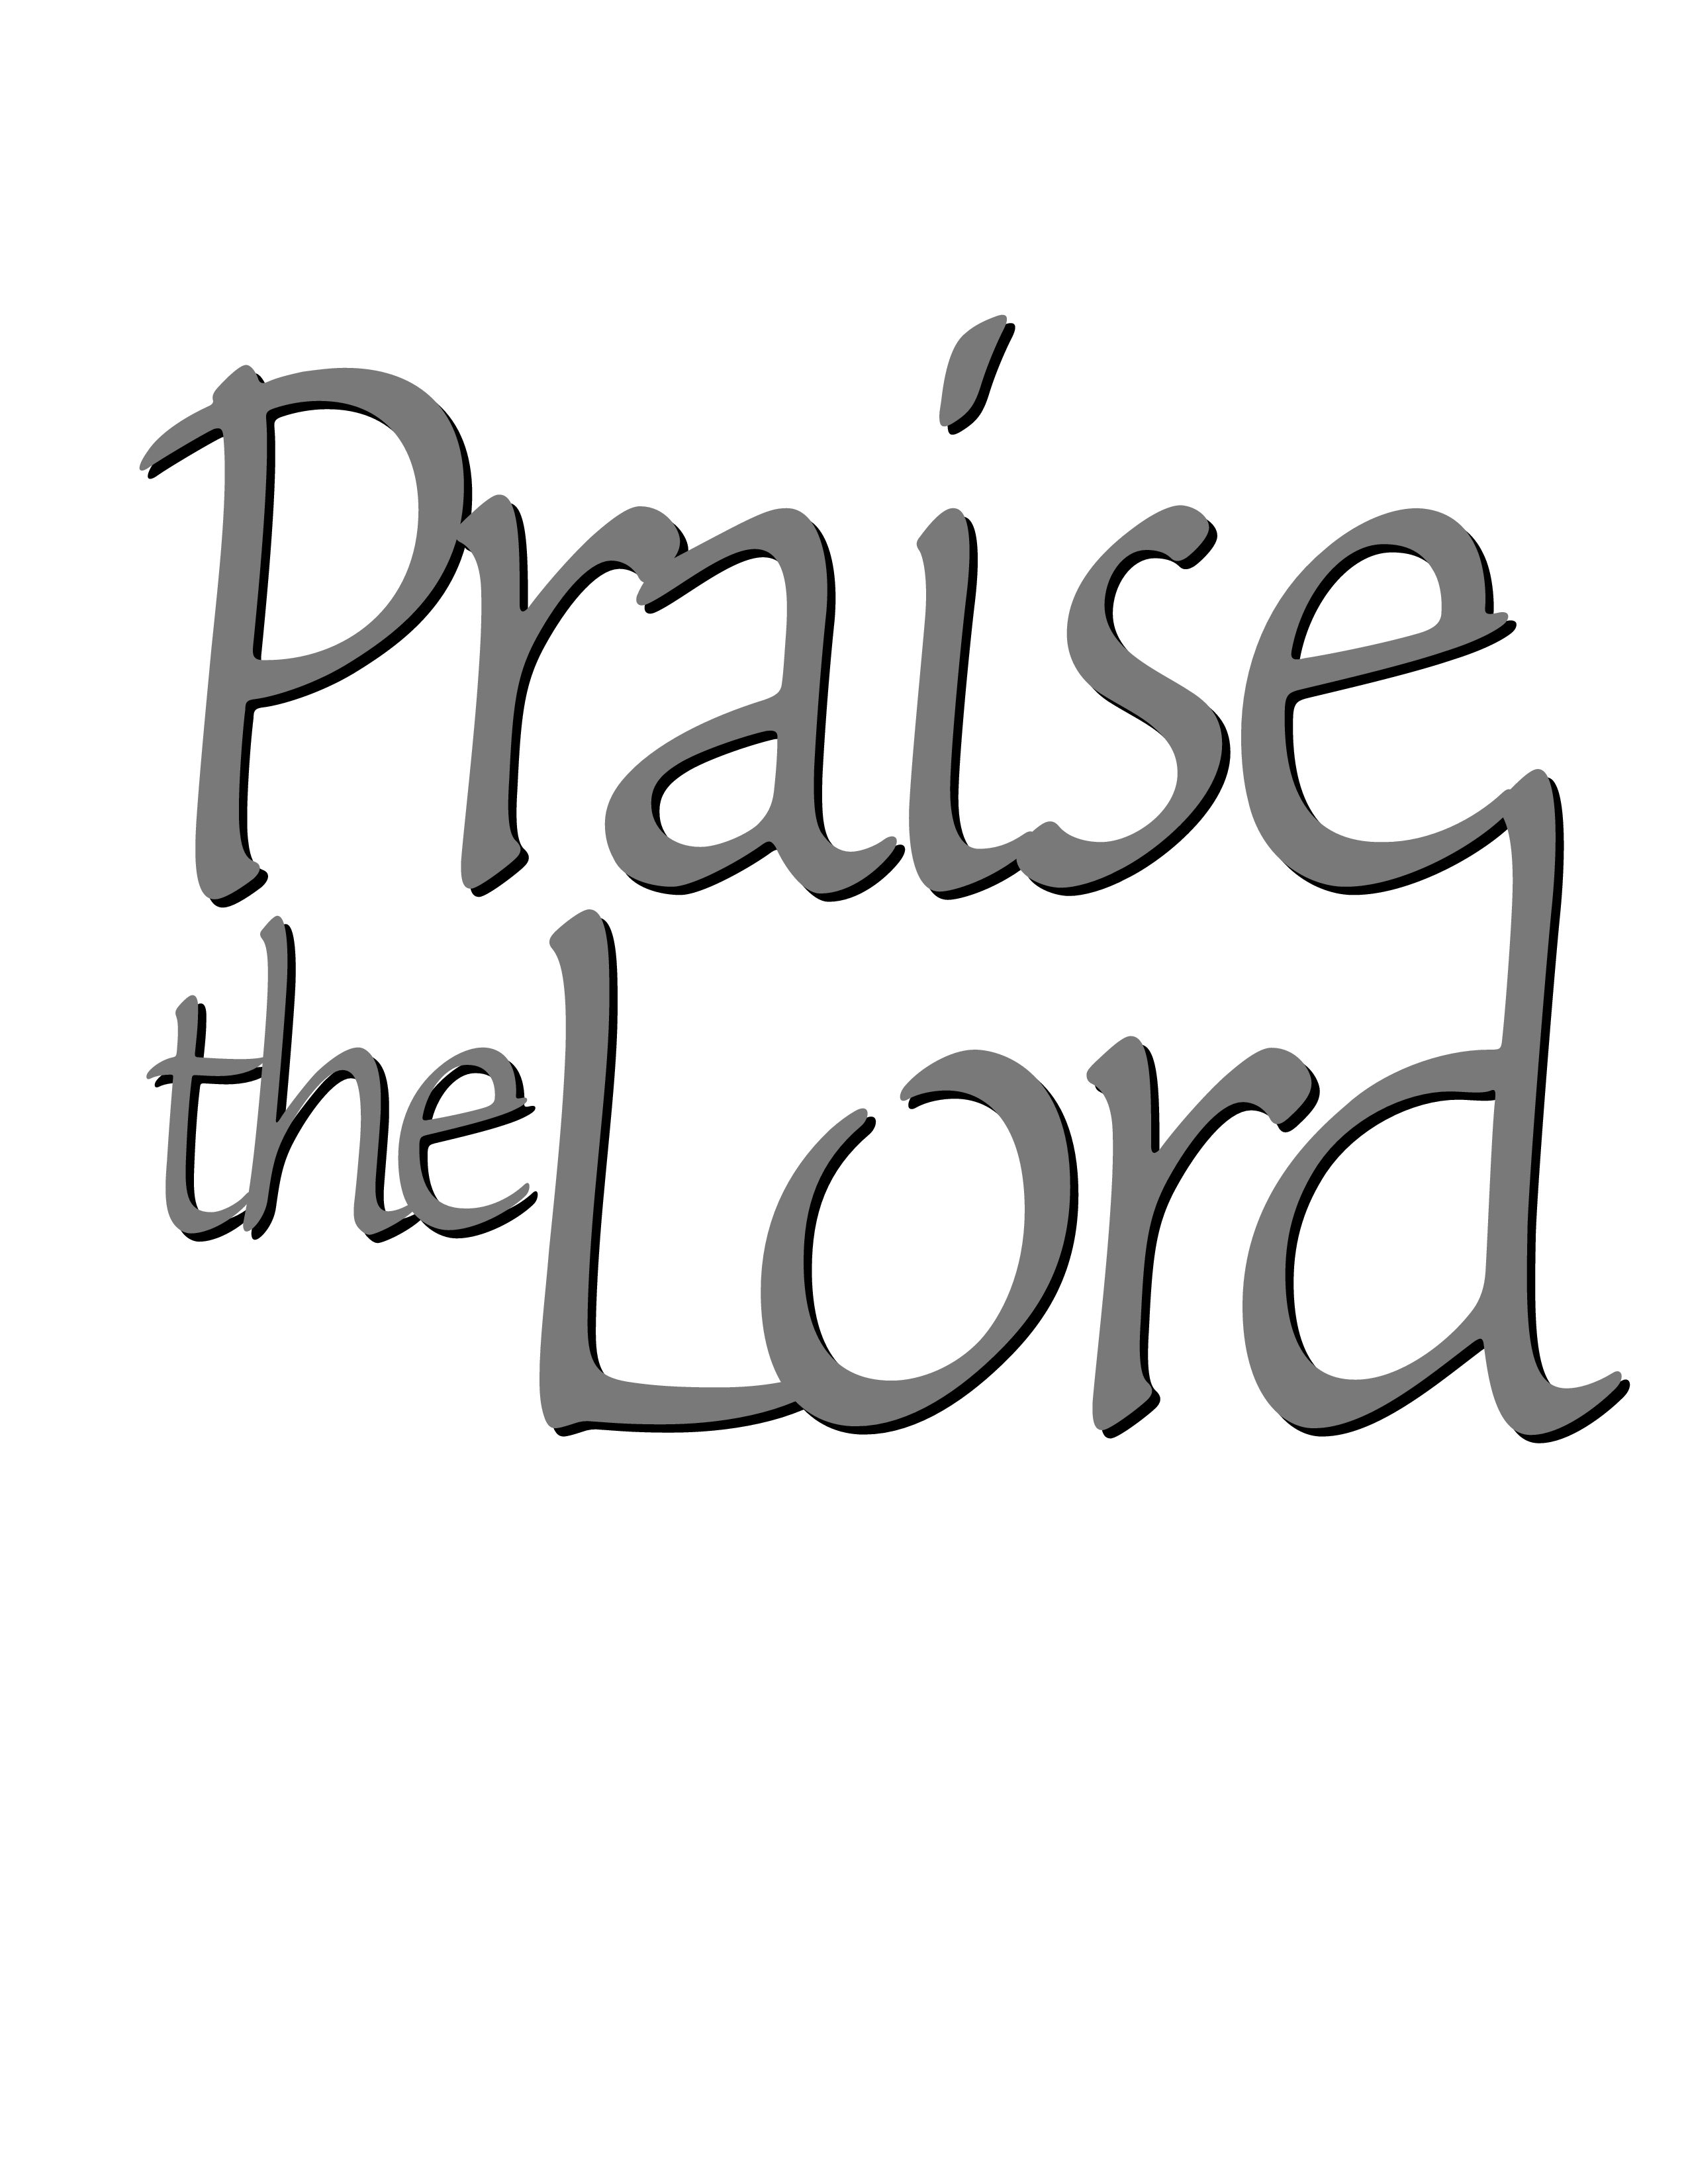 Free Praise Cliparts Download Free Clip Art Free Clip